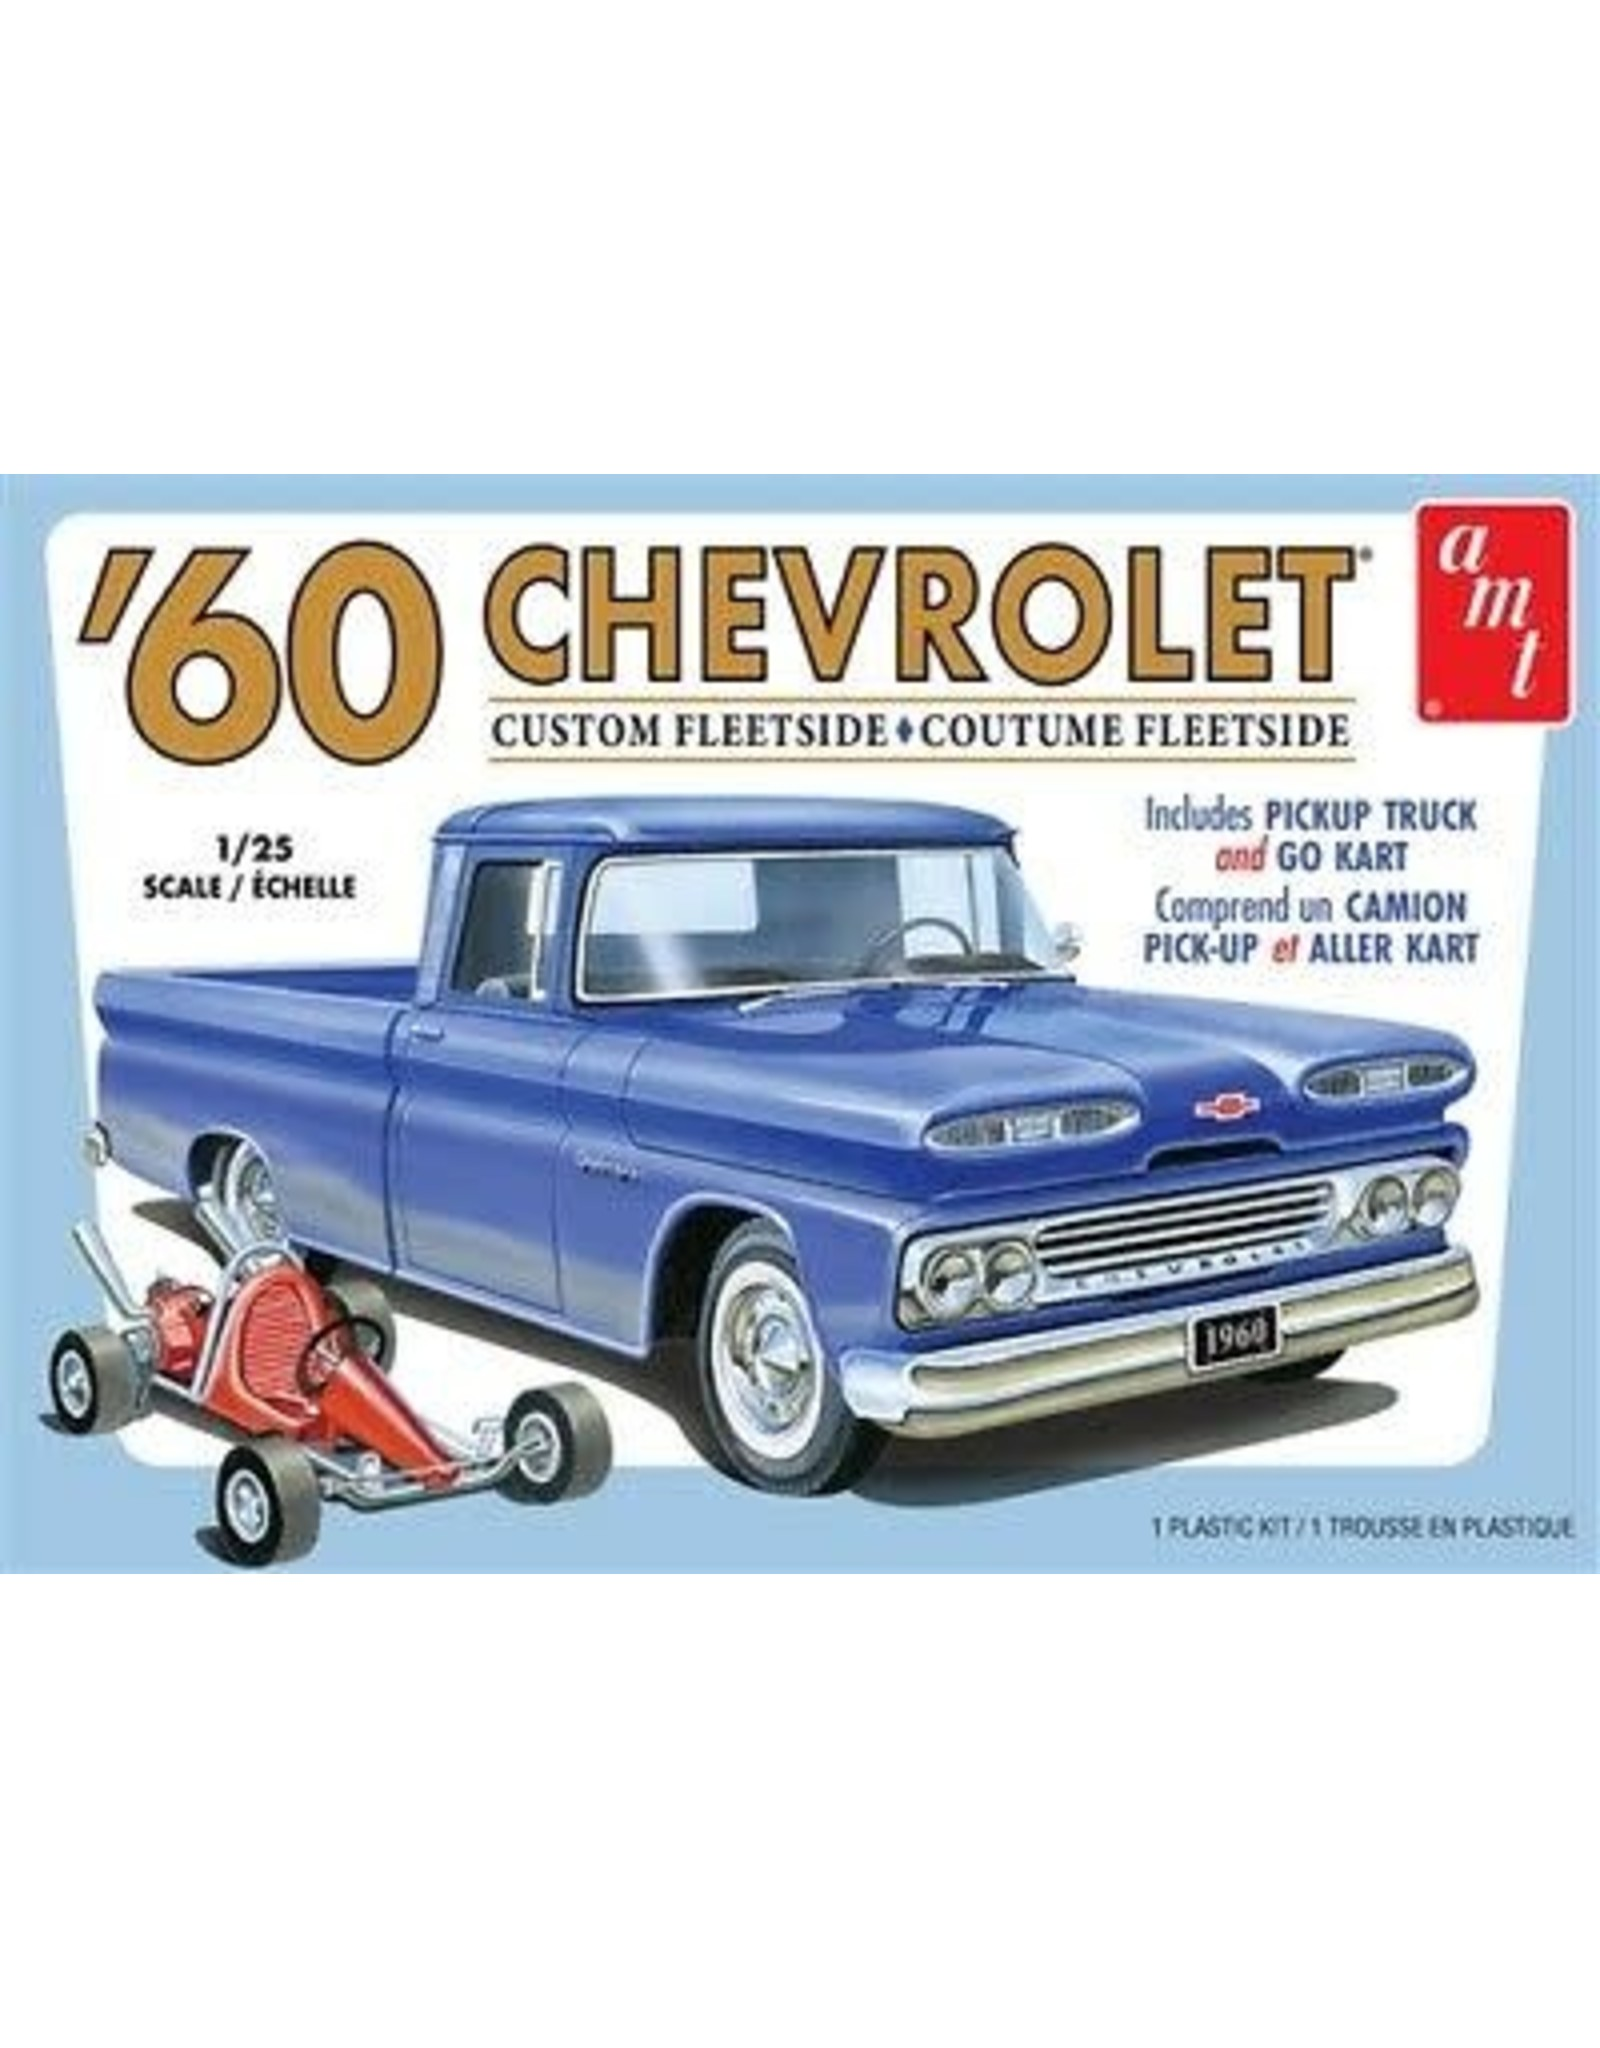 AMT Models 1960 CHEVROLET CUSTOM FLEETSIDE W/ GO KART 1:25